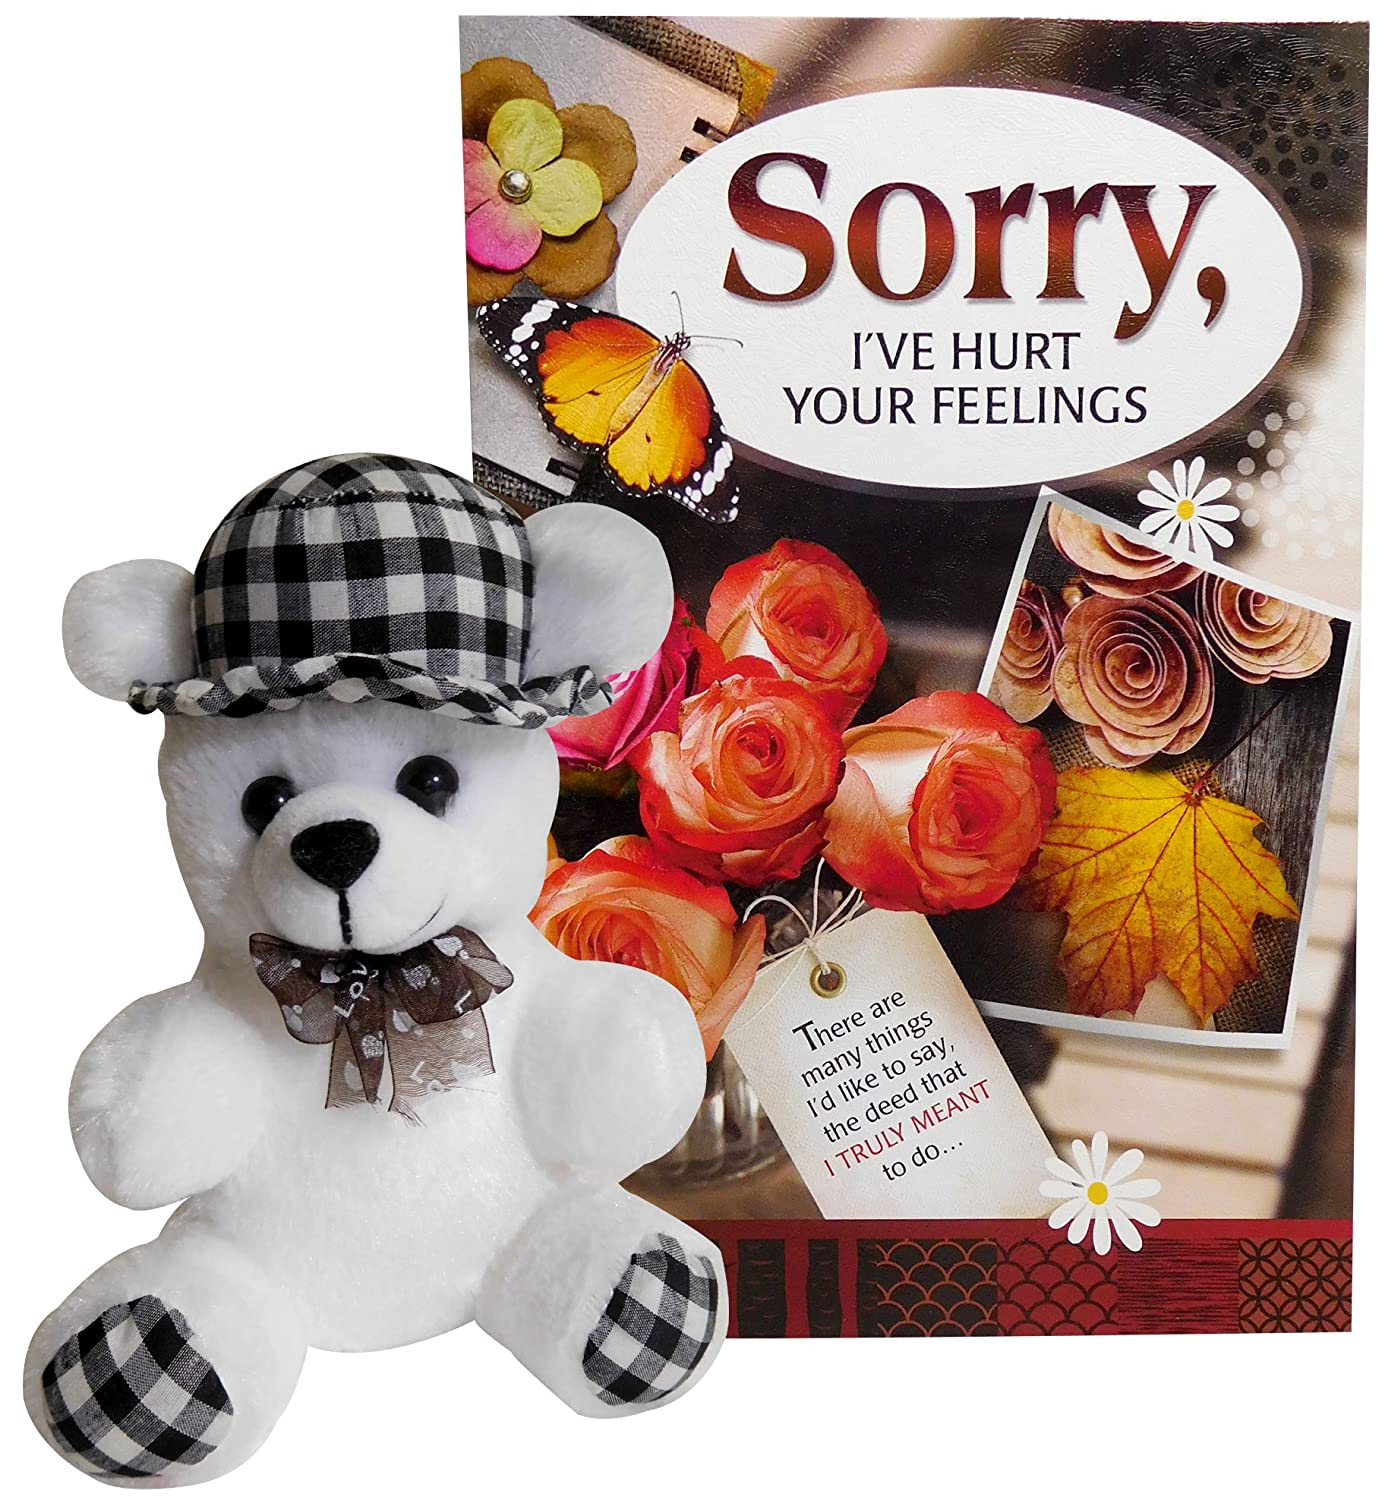 Buy Siddhi Gifts - Sorry gifts for her Online at Low Prices in India - Amazon.in  sc 1 st  Amazon.in & Buy Siddhi Gifts - Sorry gifts for her Online at Low Prices in India ...